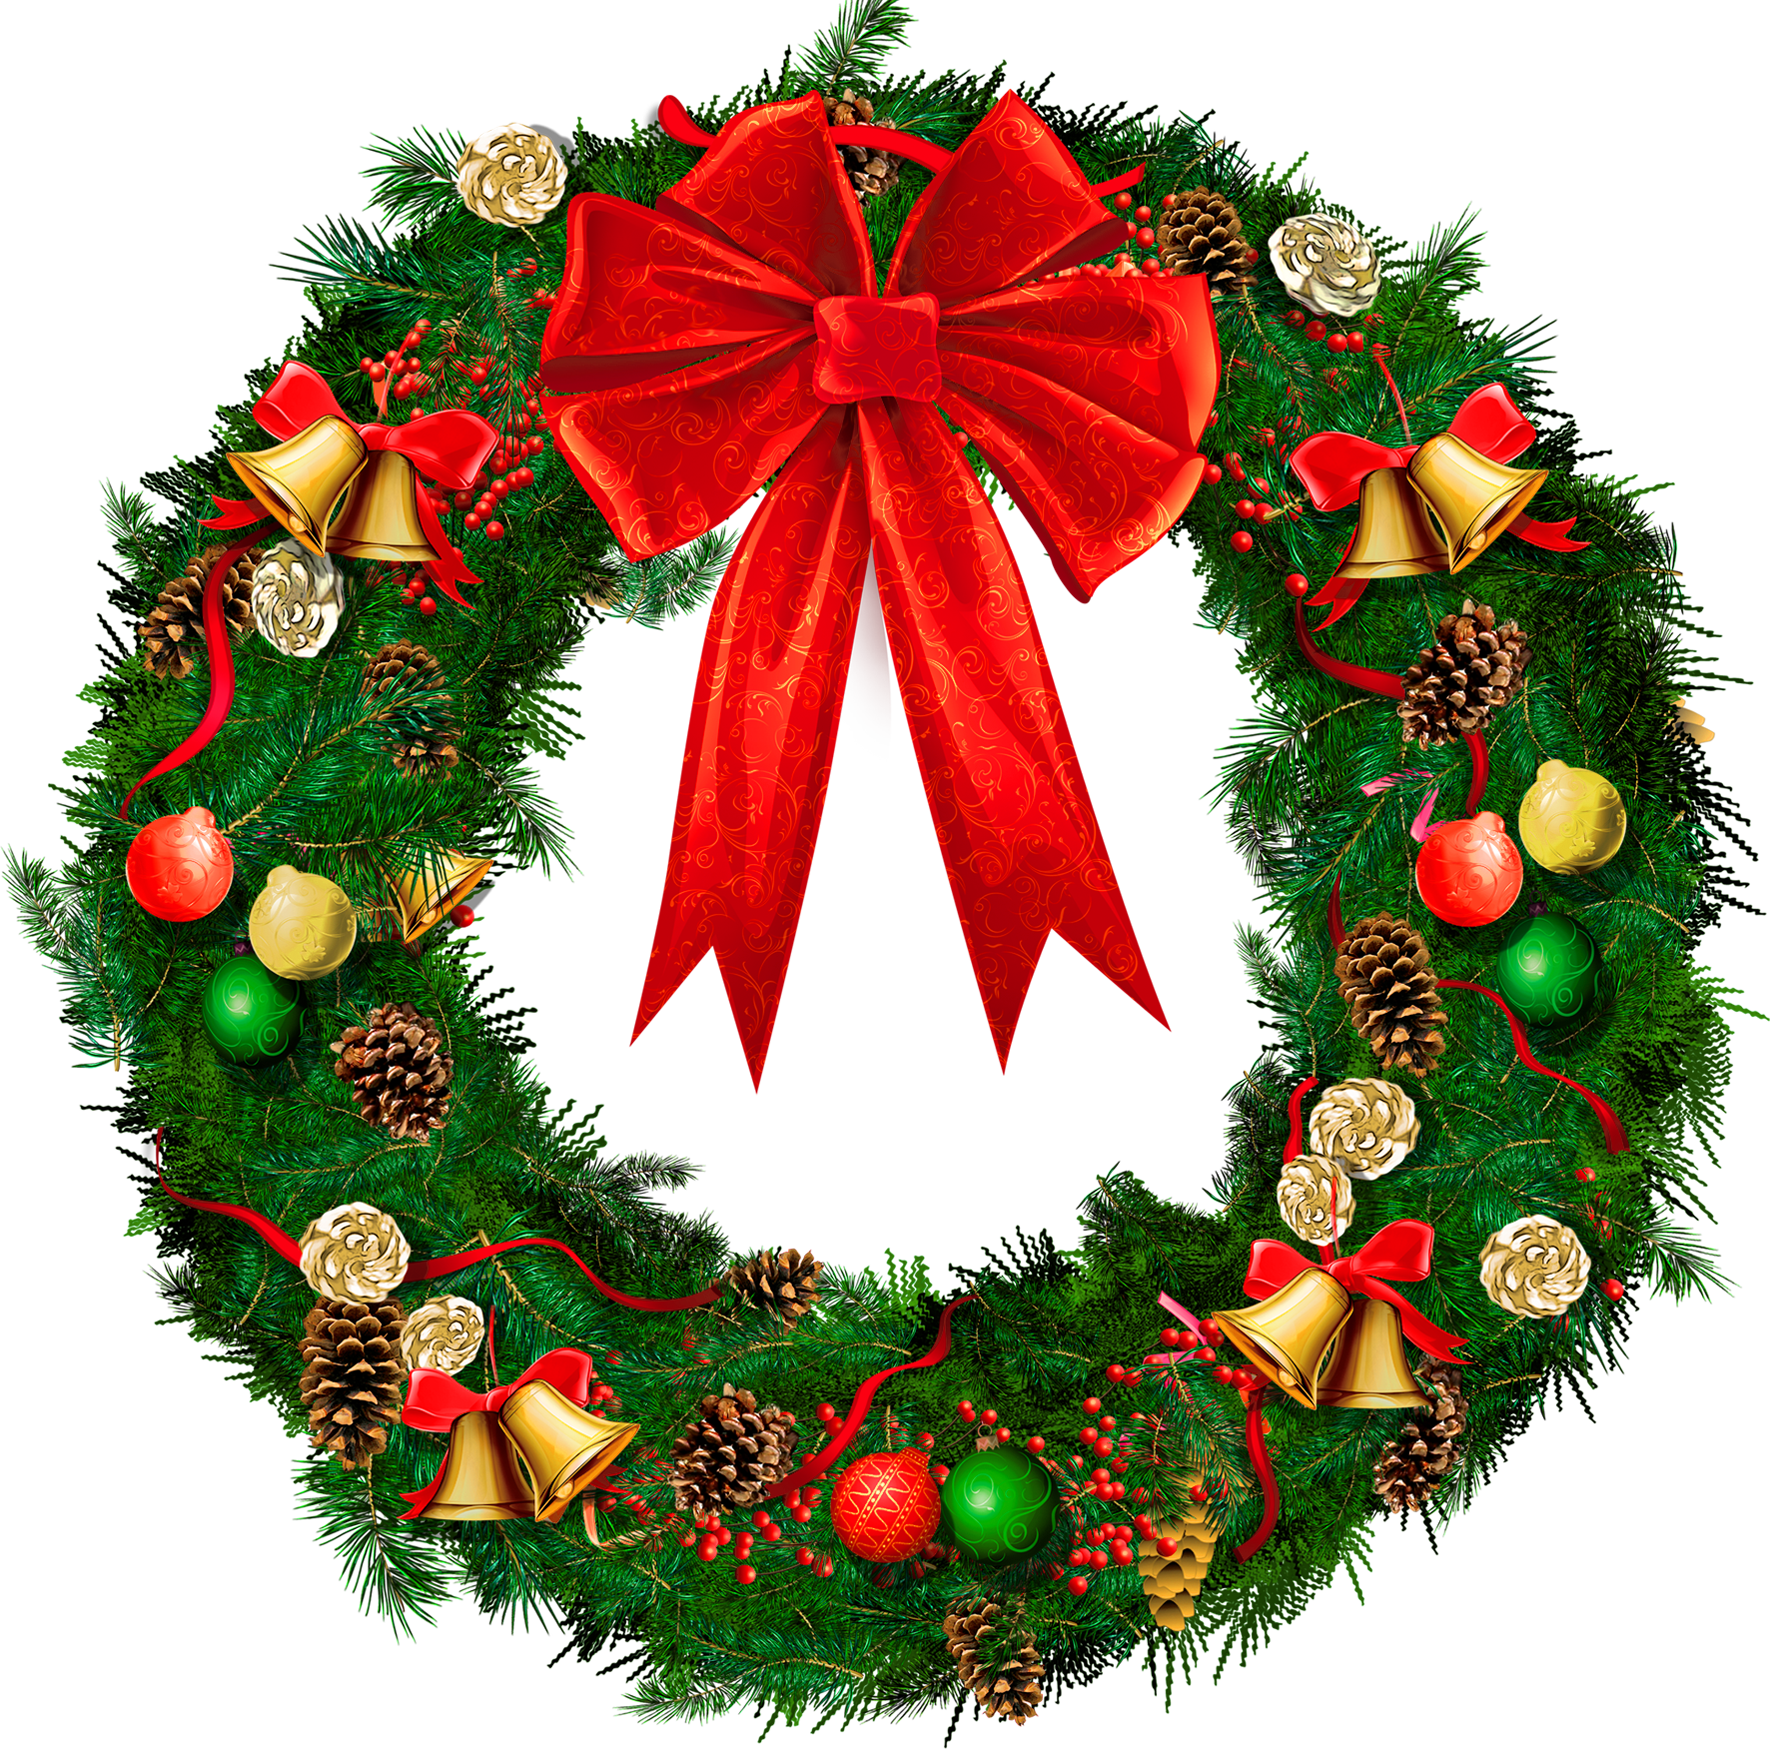 Holydays clipart christmas wreath Wreath christmas wreath clipart Clipart